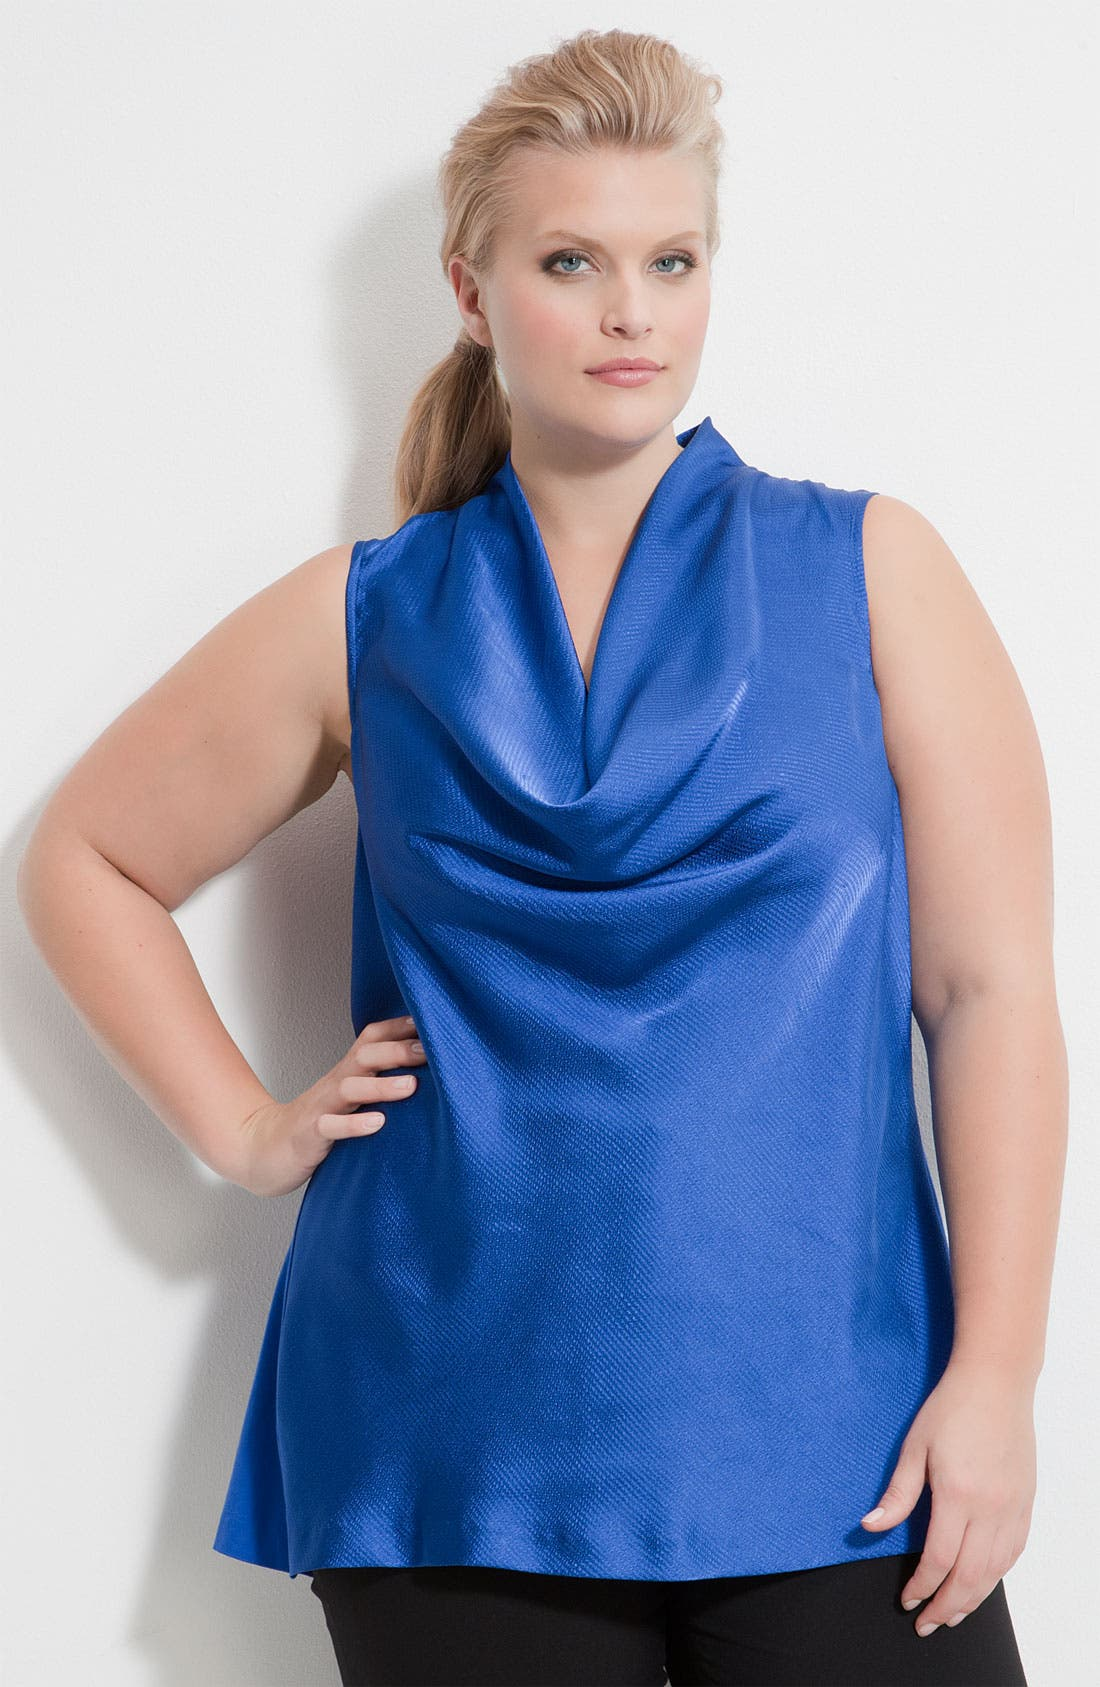 Alternate Image 1 Selected - Kenneth Cole New York Mixed Media Drape Neck Top (Plus)